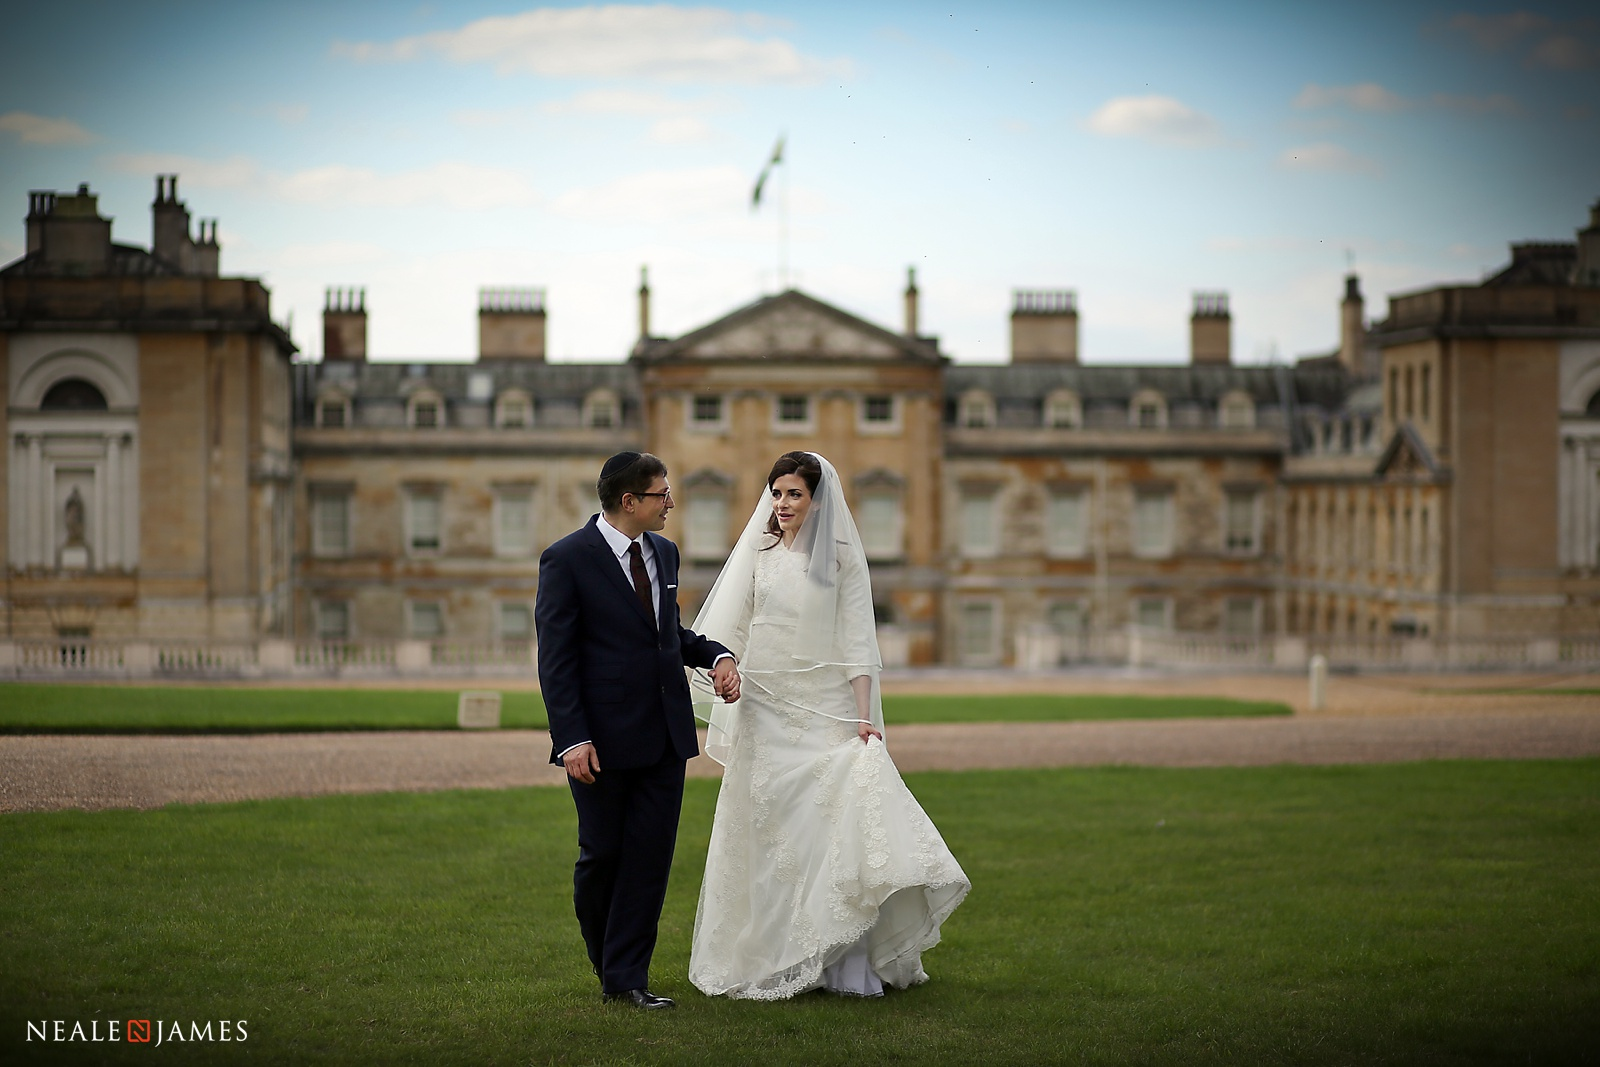 Colour photo of a bride and groom afront Woburn Abbey